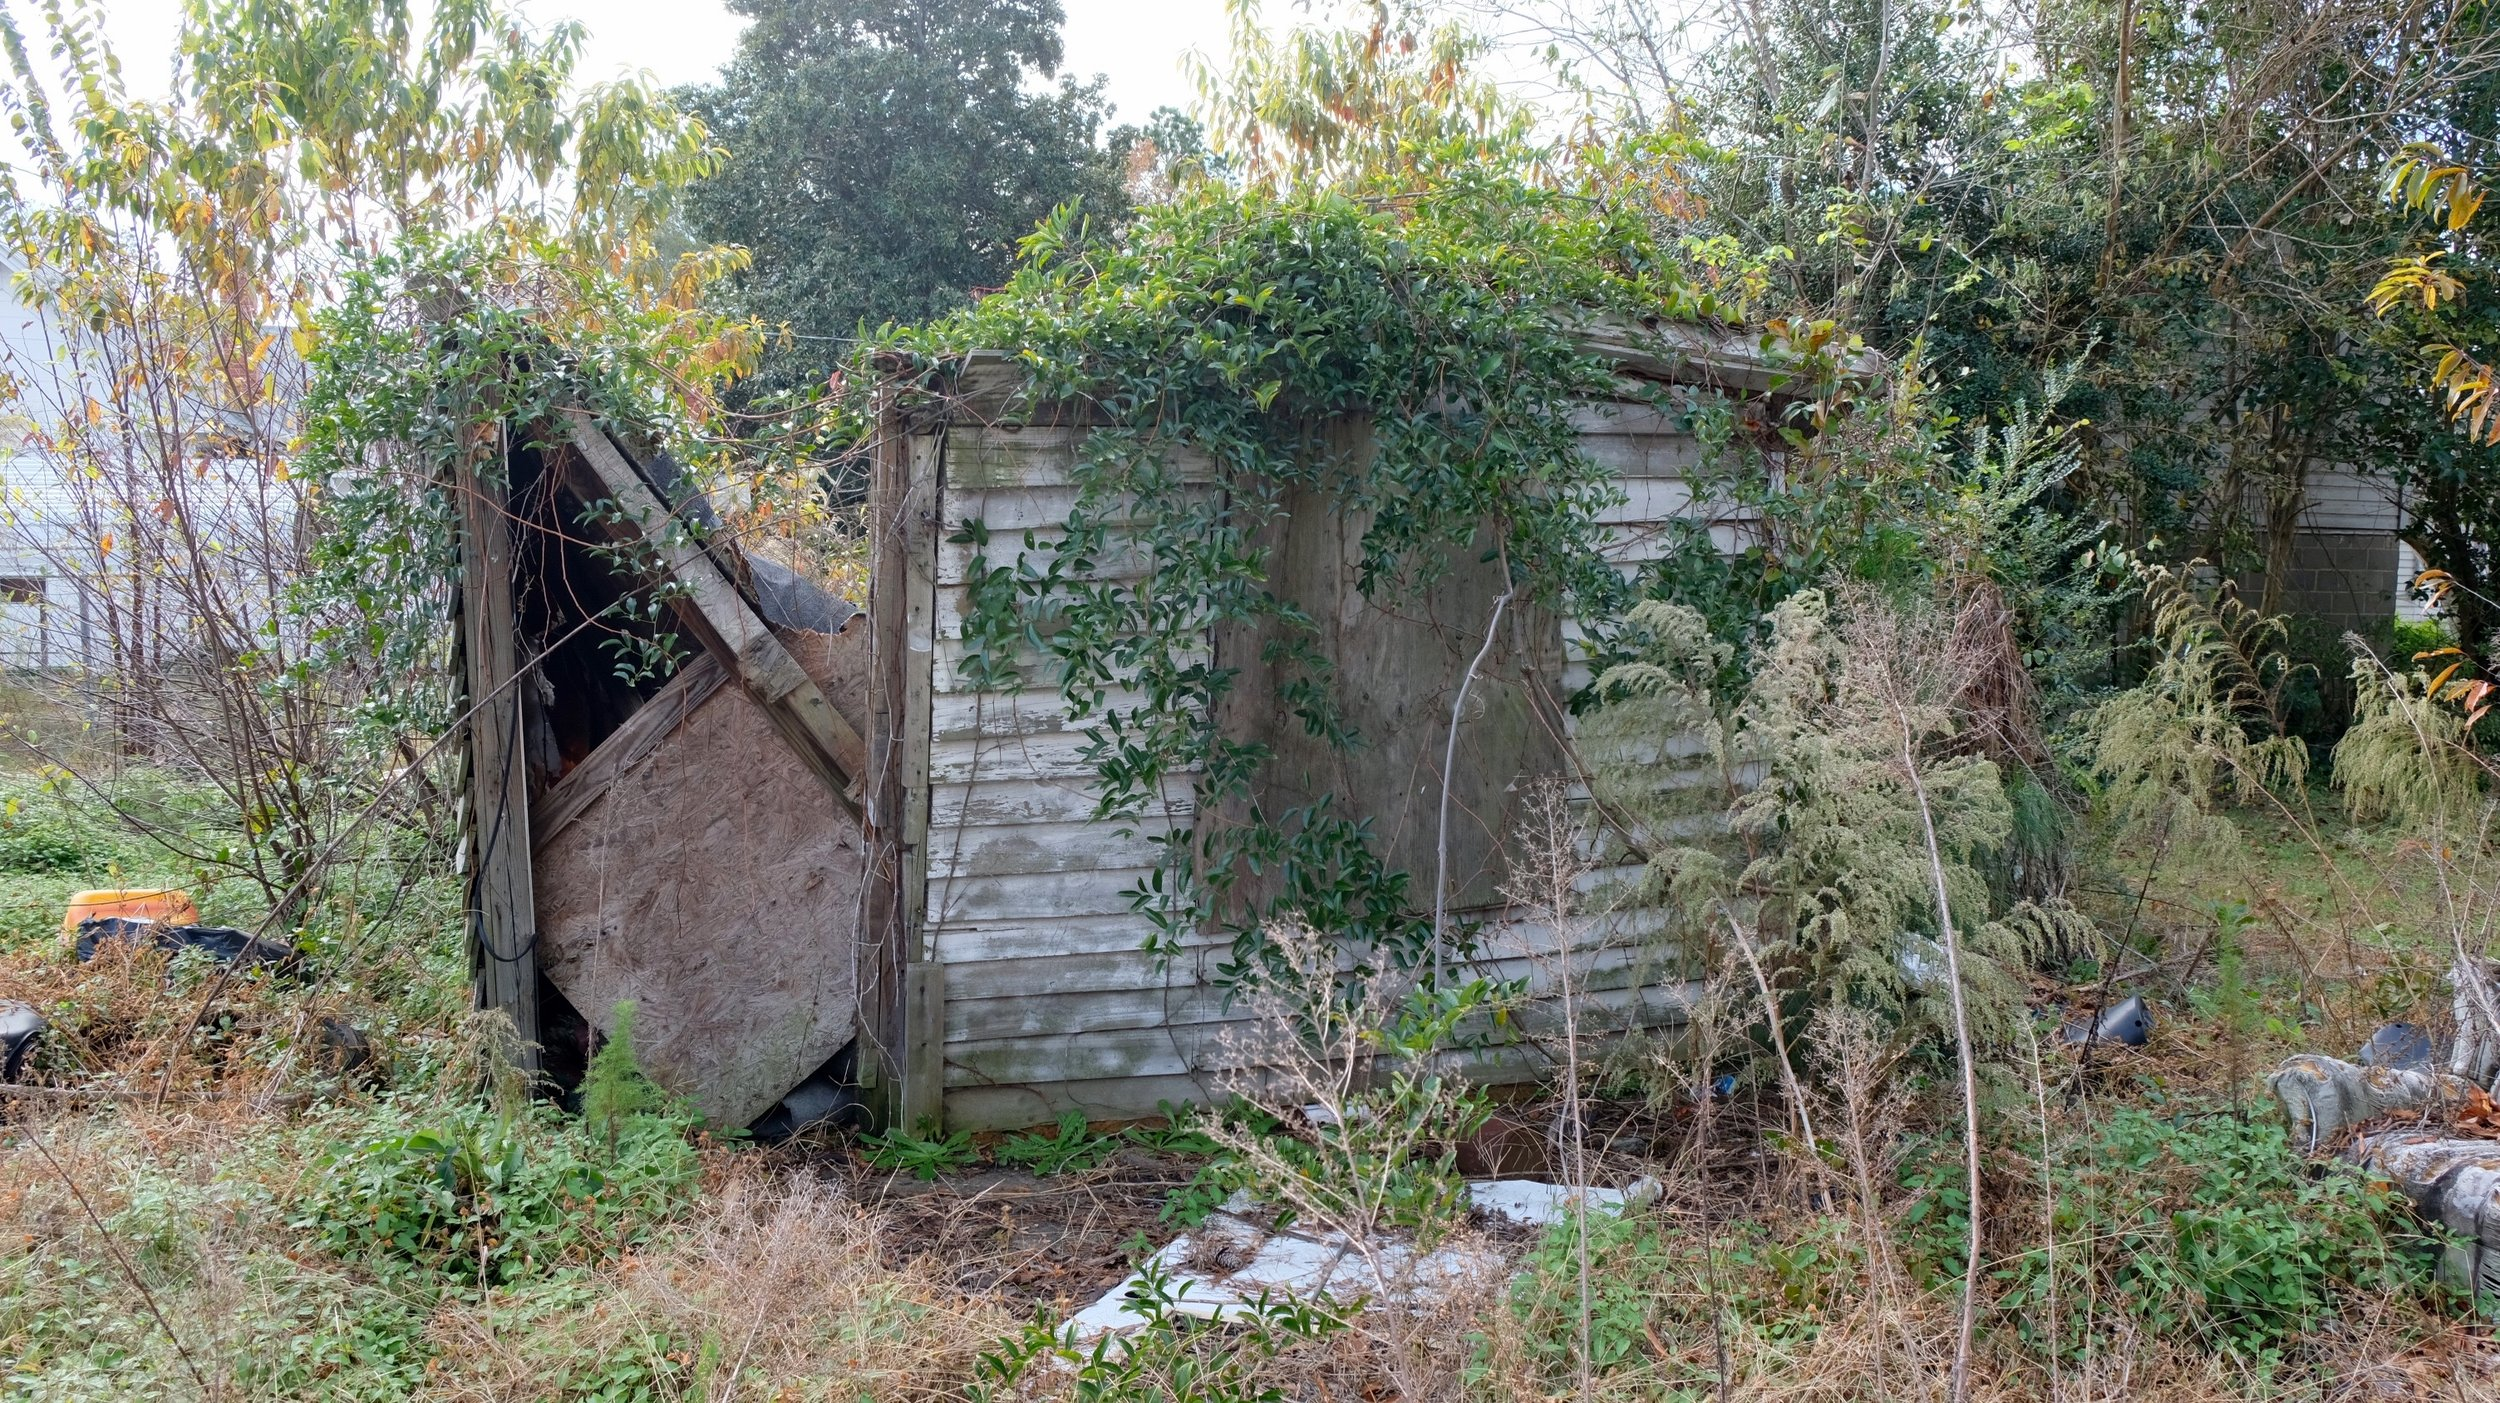 A dilapidated wooden structure just feet from where Megan Oxendine was found dead and decomposing. (Photo by Russ Bowen)